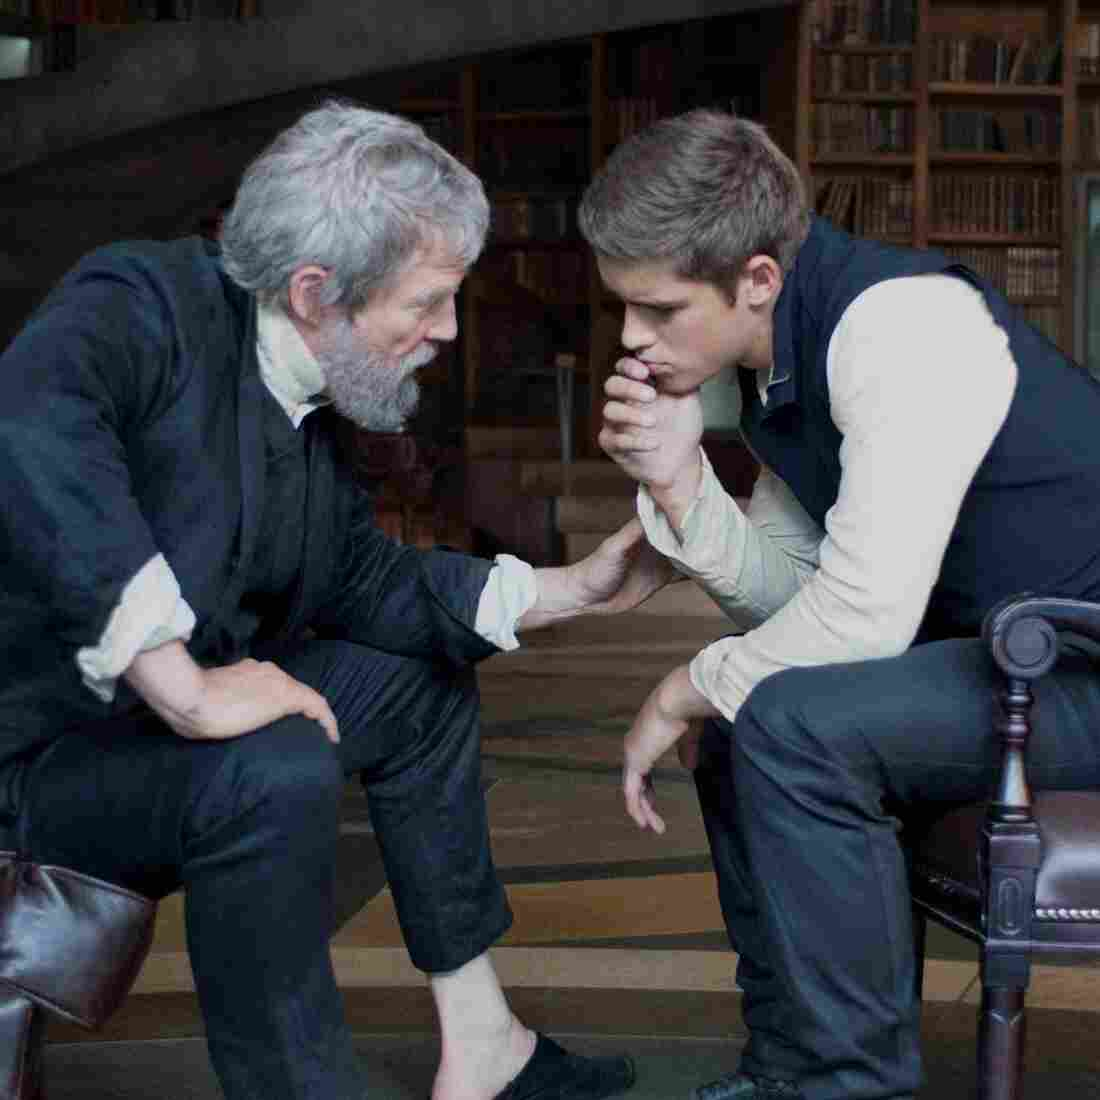 Jeff Bridges (left) produces and stars as the title character in The Giver, alongside Australian actor Brenton Thwaites, who plays Jonas, his young apprentice. The Giver is the first film rendition of the popular 1993 young adult novel by Lois Lowry.